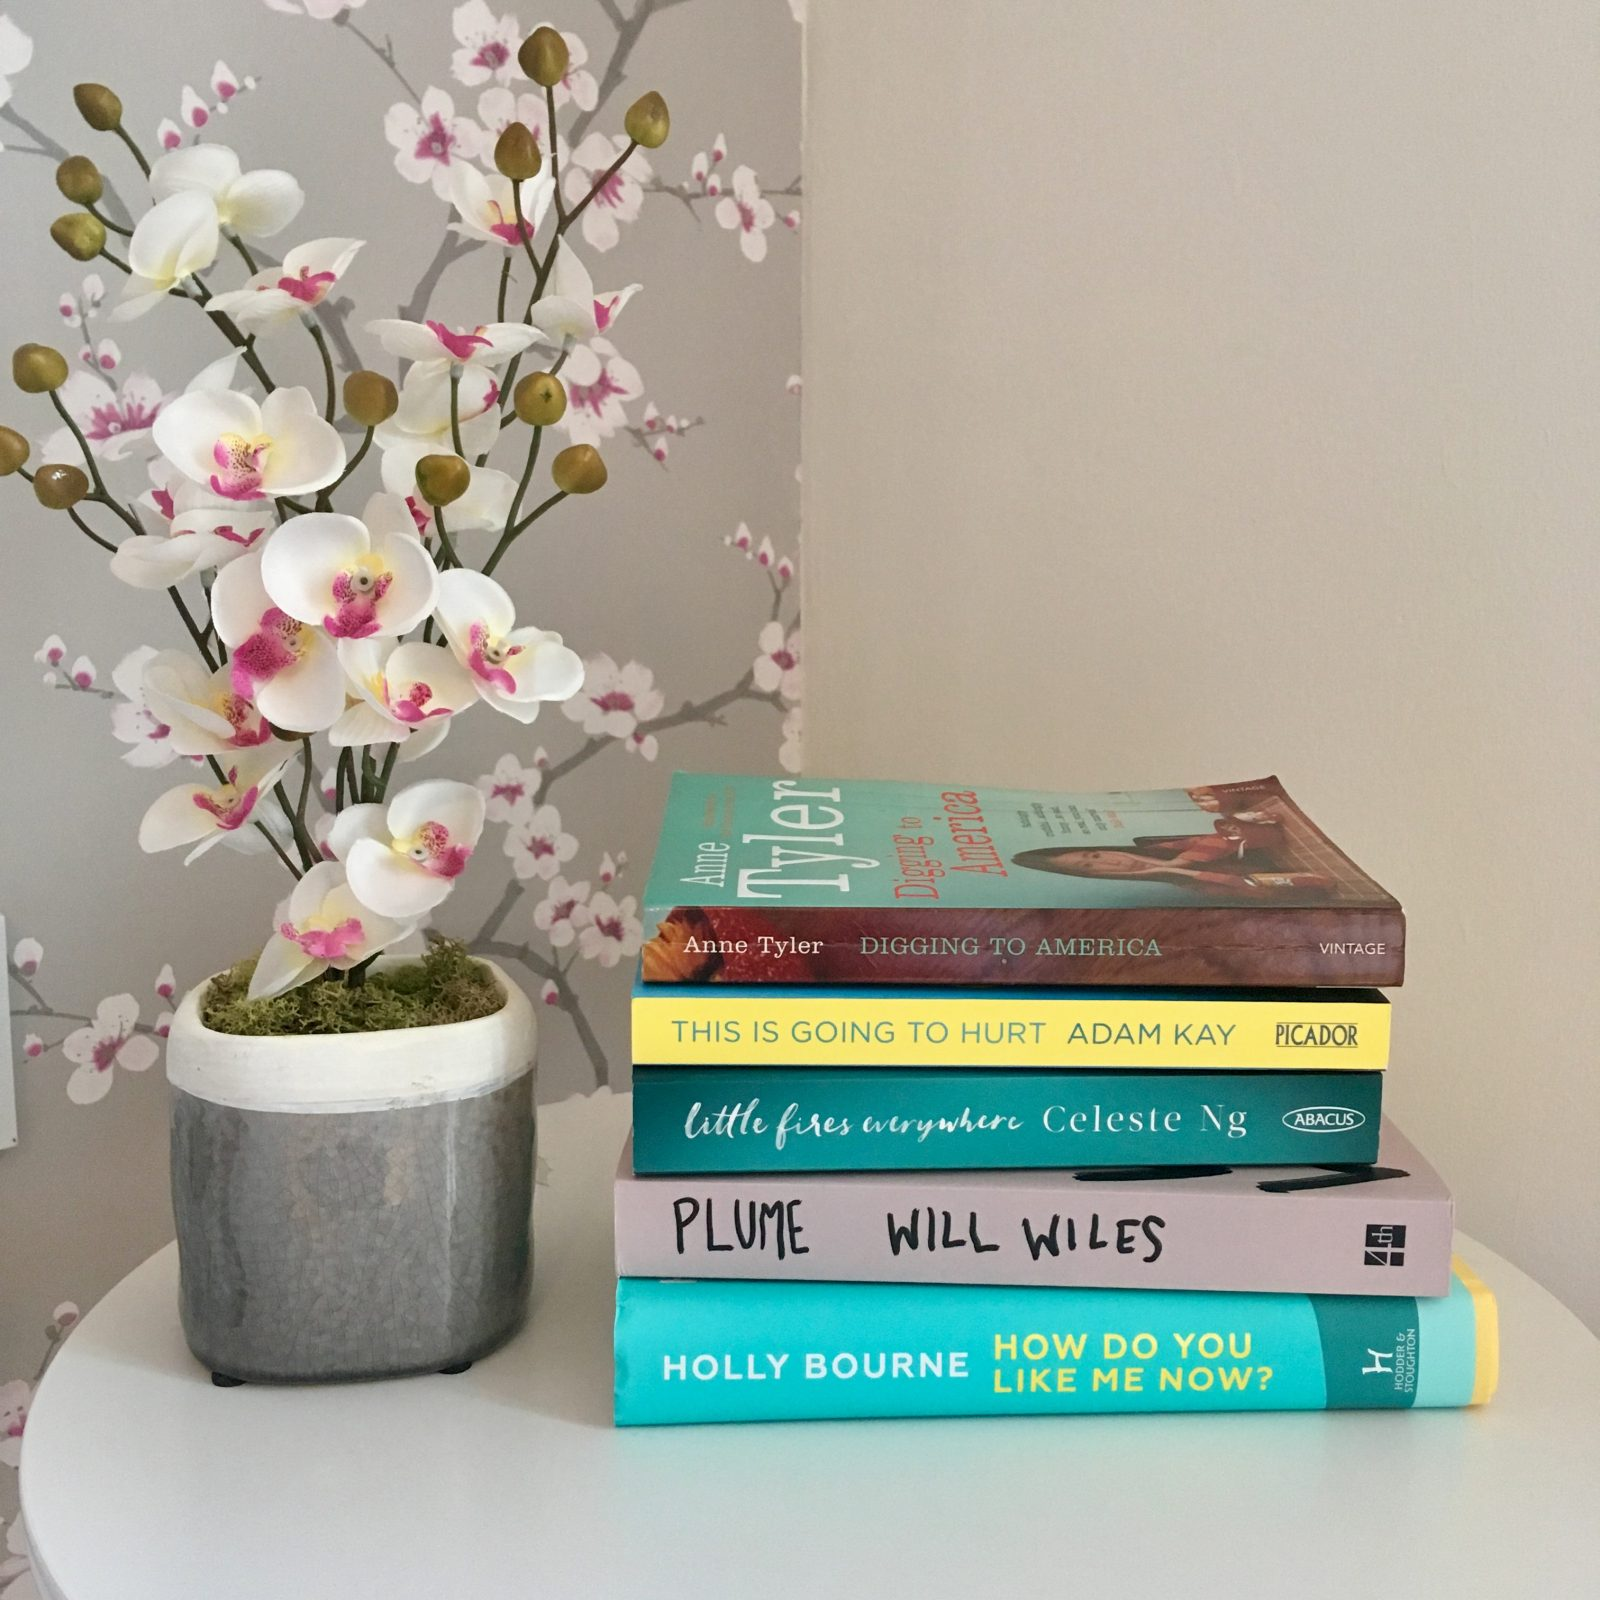 five books stacked on white table next to decorative flowers